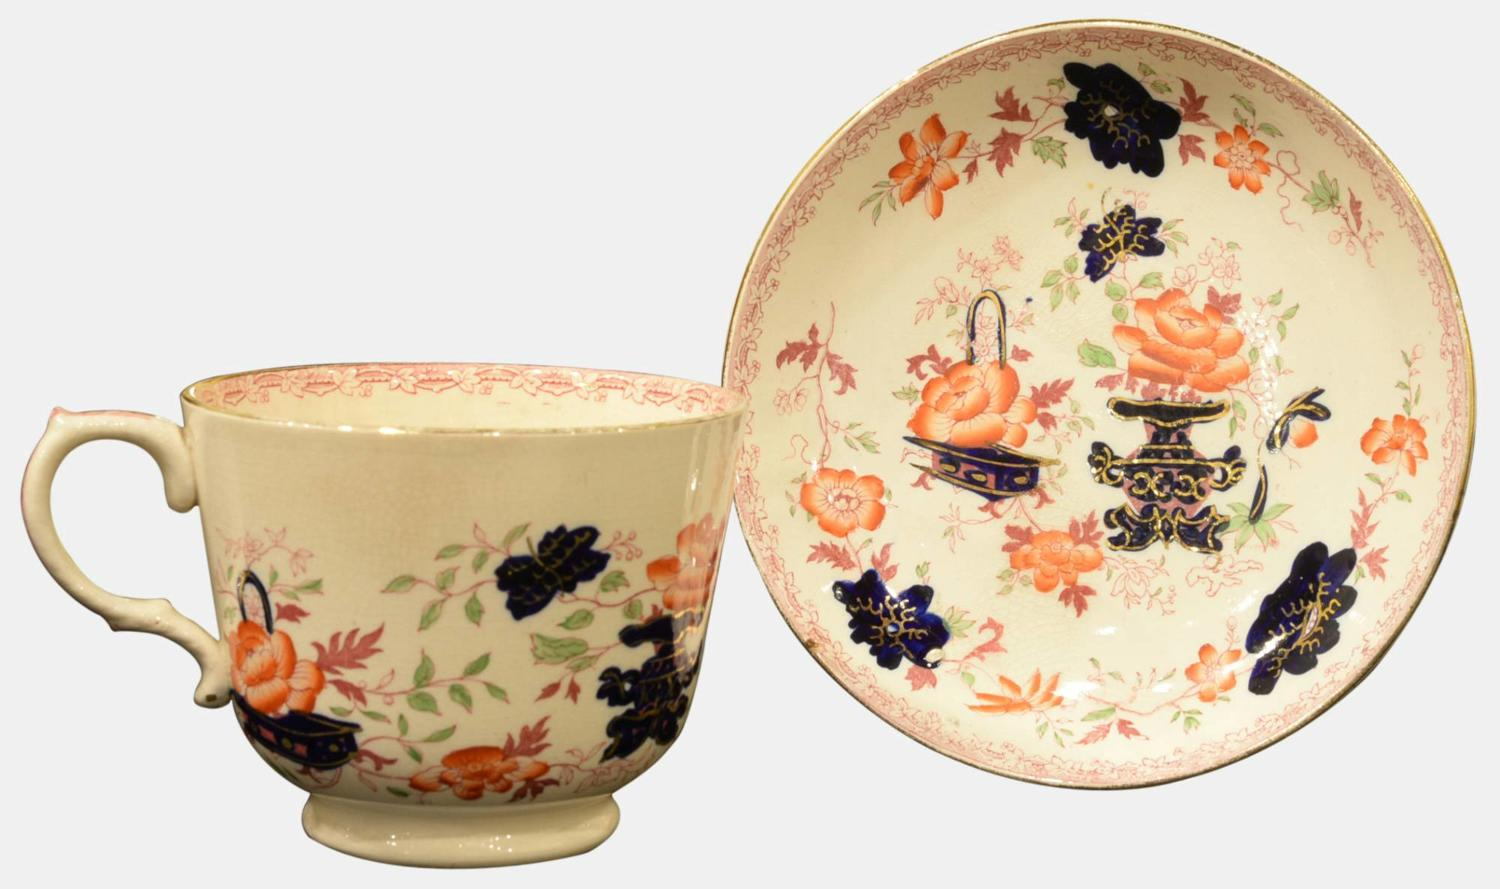 Outsize Staffordshire Teacup and Saucer